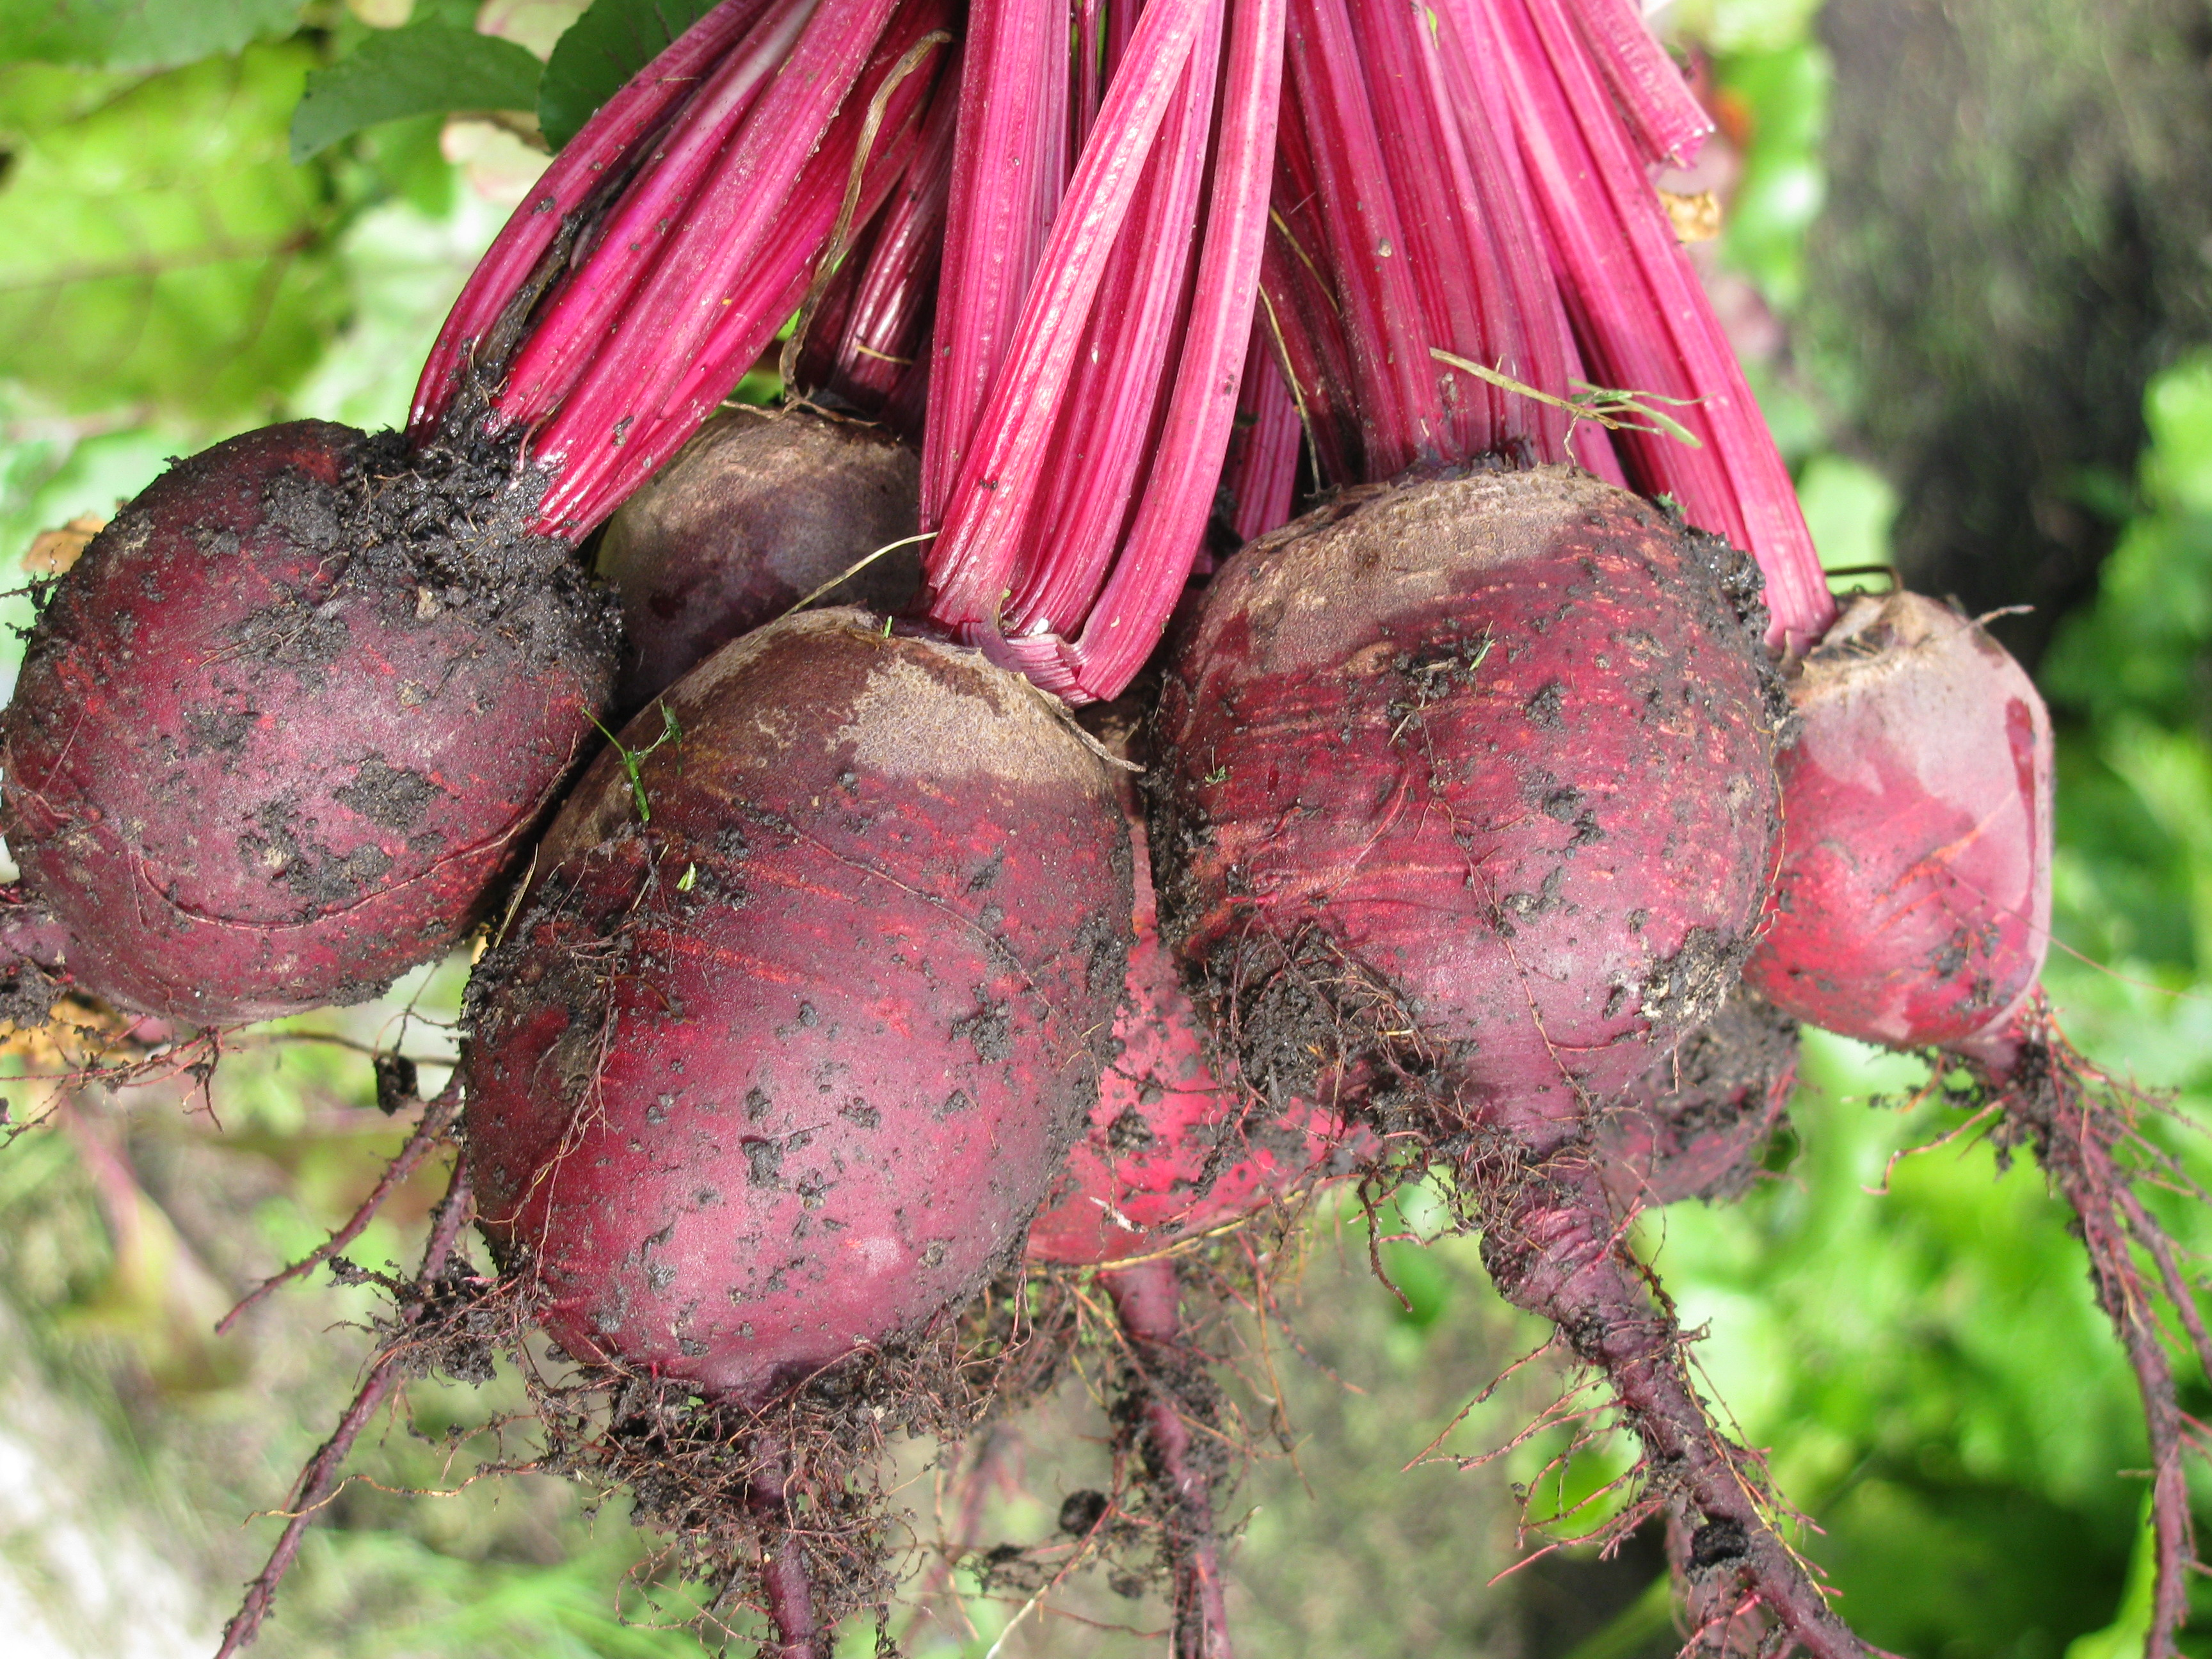 Beets abound!